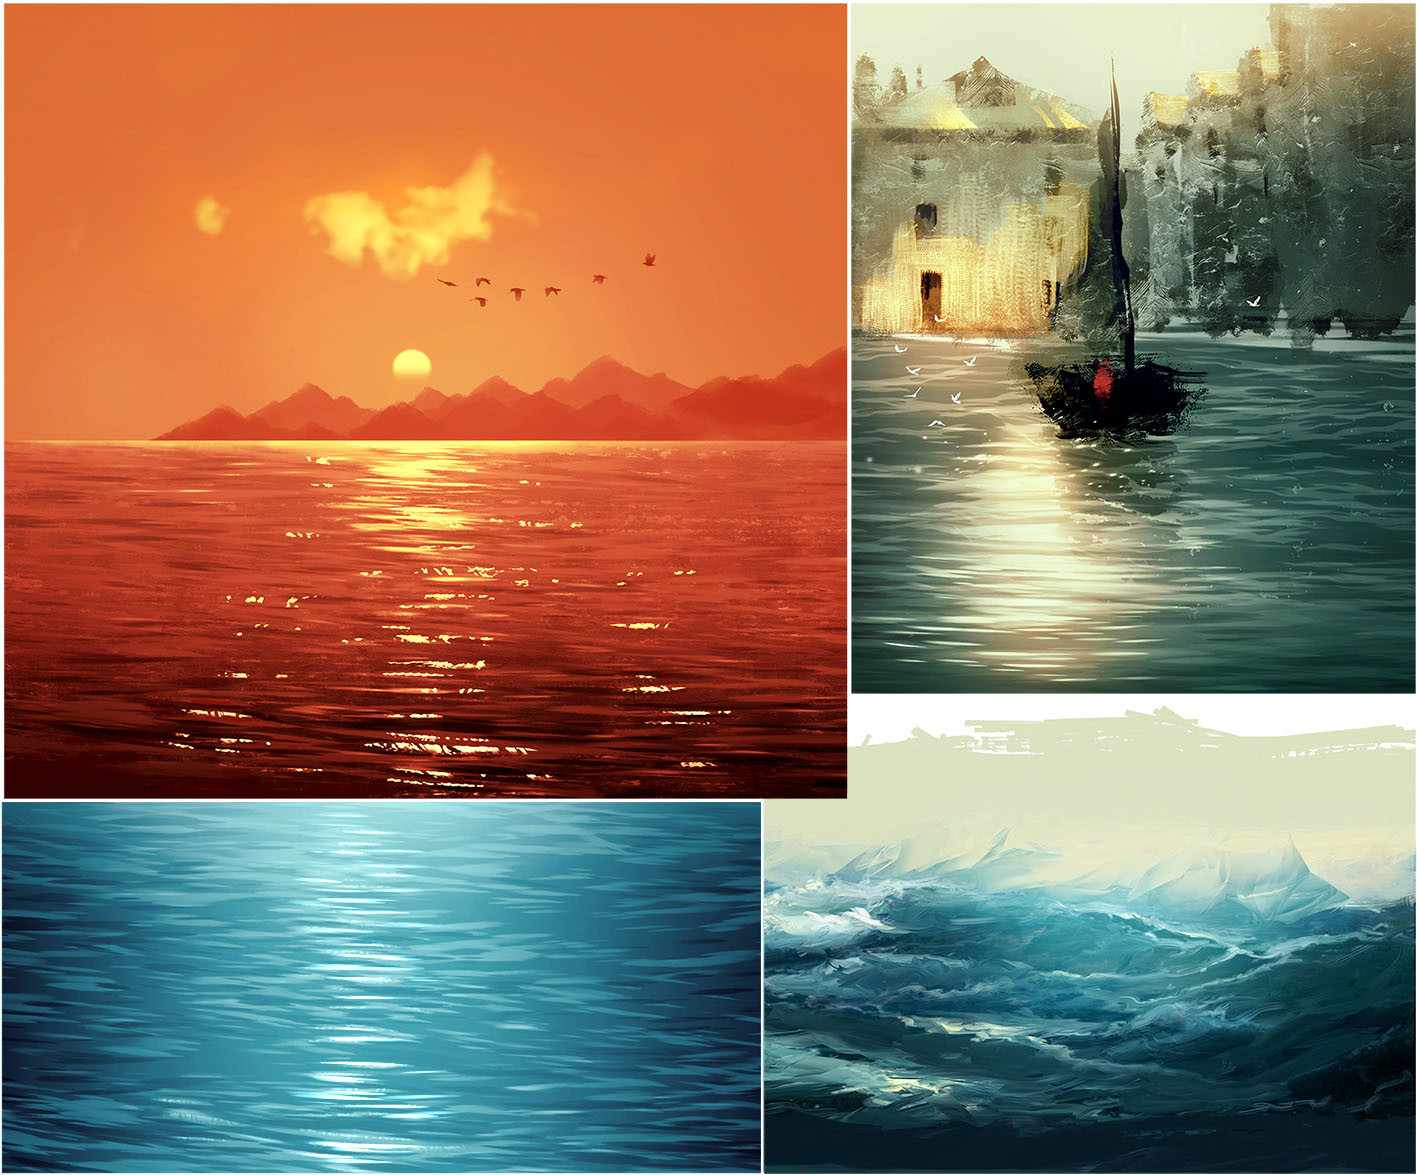 Emrullah cita some works sea